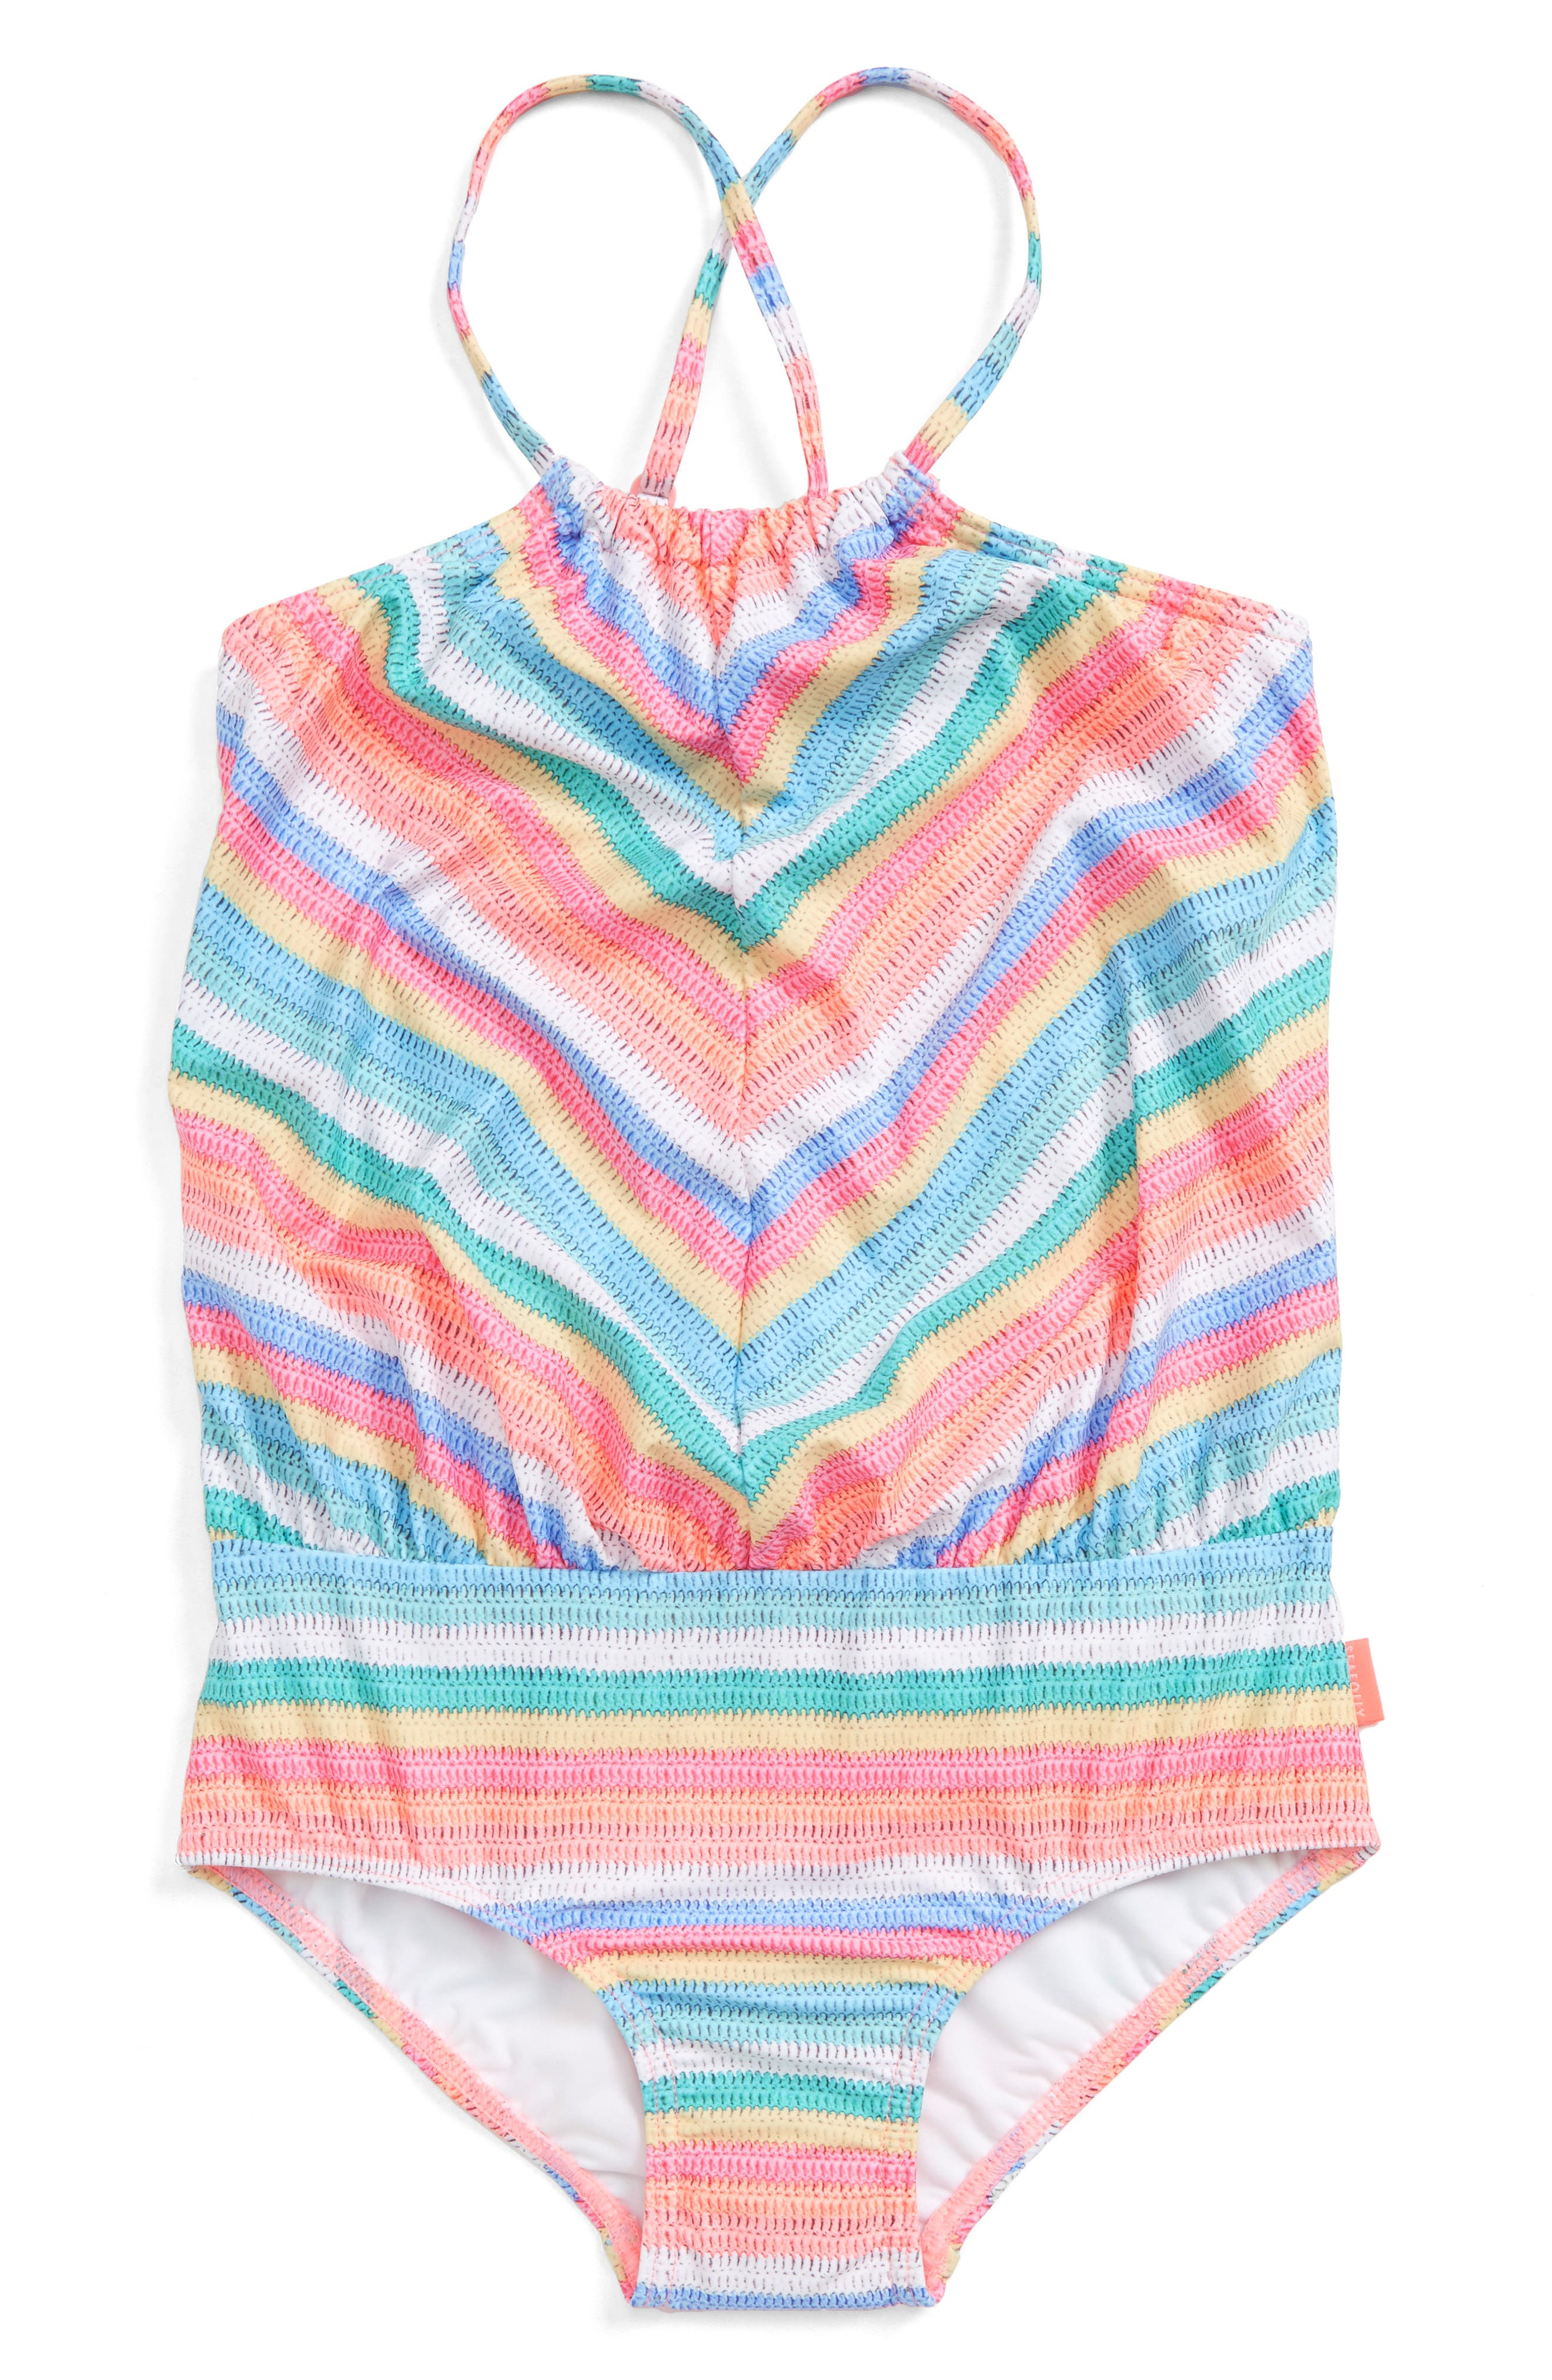 Candy Pop One-Piece Swimsuit,                             Main thumbnail 1, color,                             Candy Stripe